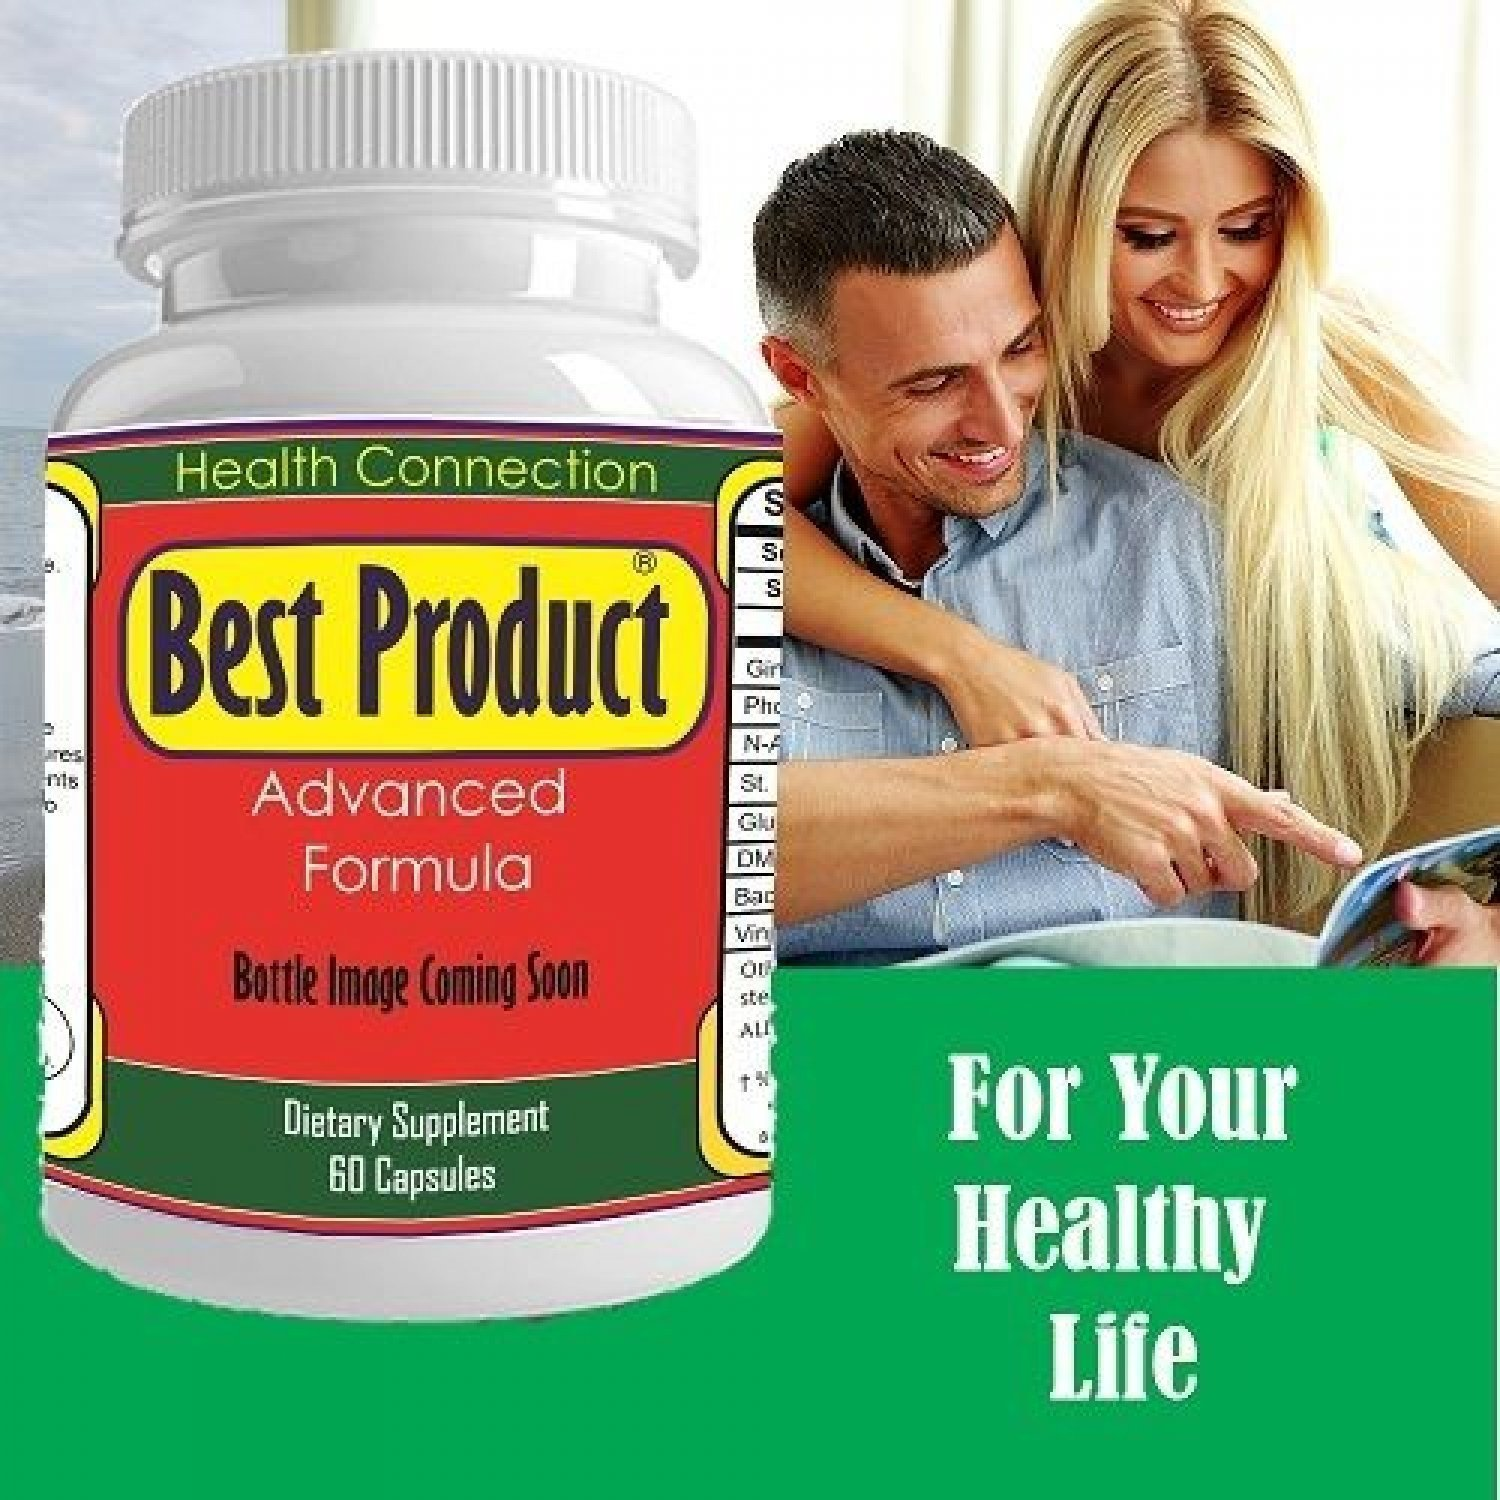 Hair Lift Hair Growth Pills Longer Hai Stronger Thicker Nails! 22 Potent  Vitamins Assists Anti-Aging Skin  Stunning Results in 30 daysLong Sexy